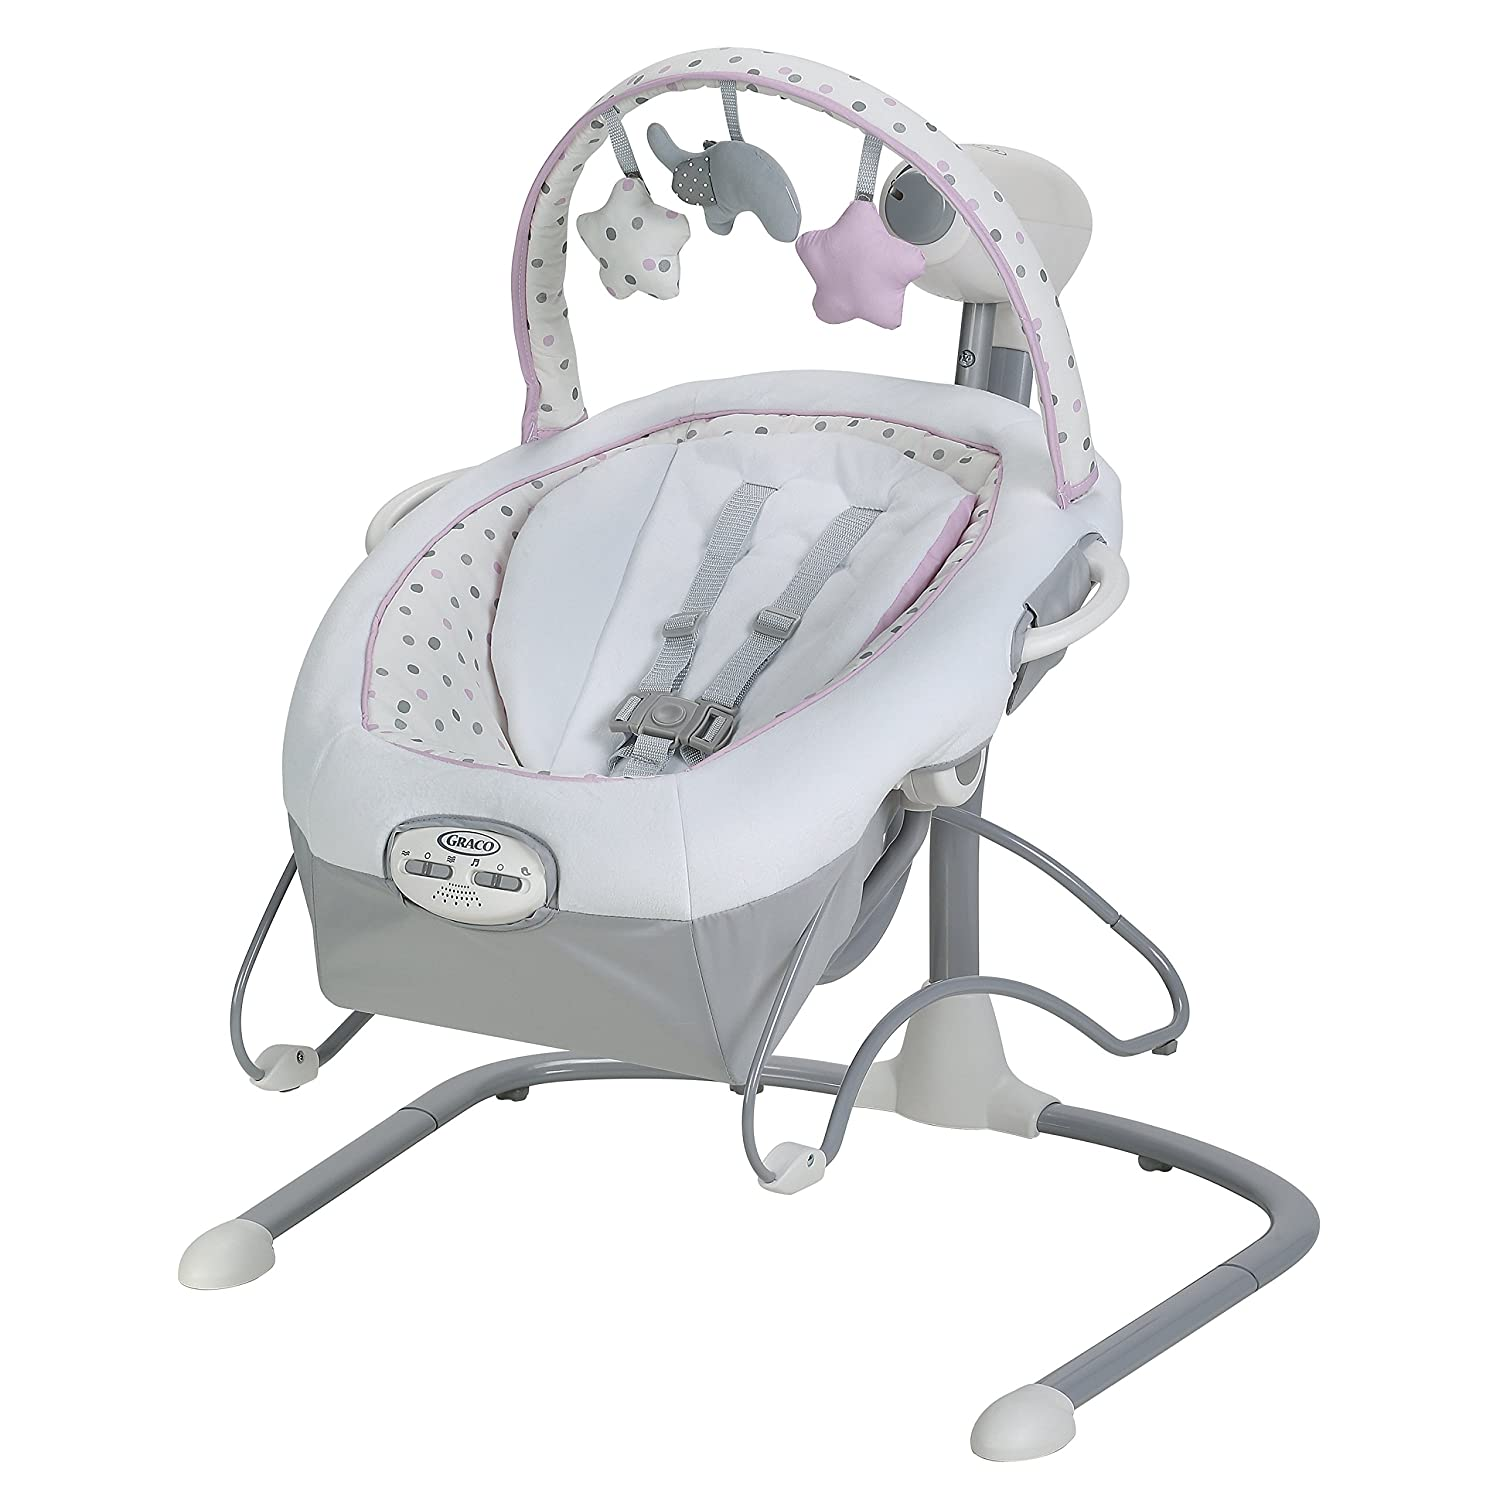 10. Graco Duet Sway LX Swing: Best baby swing and bouncer combo